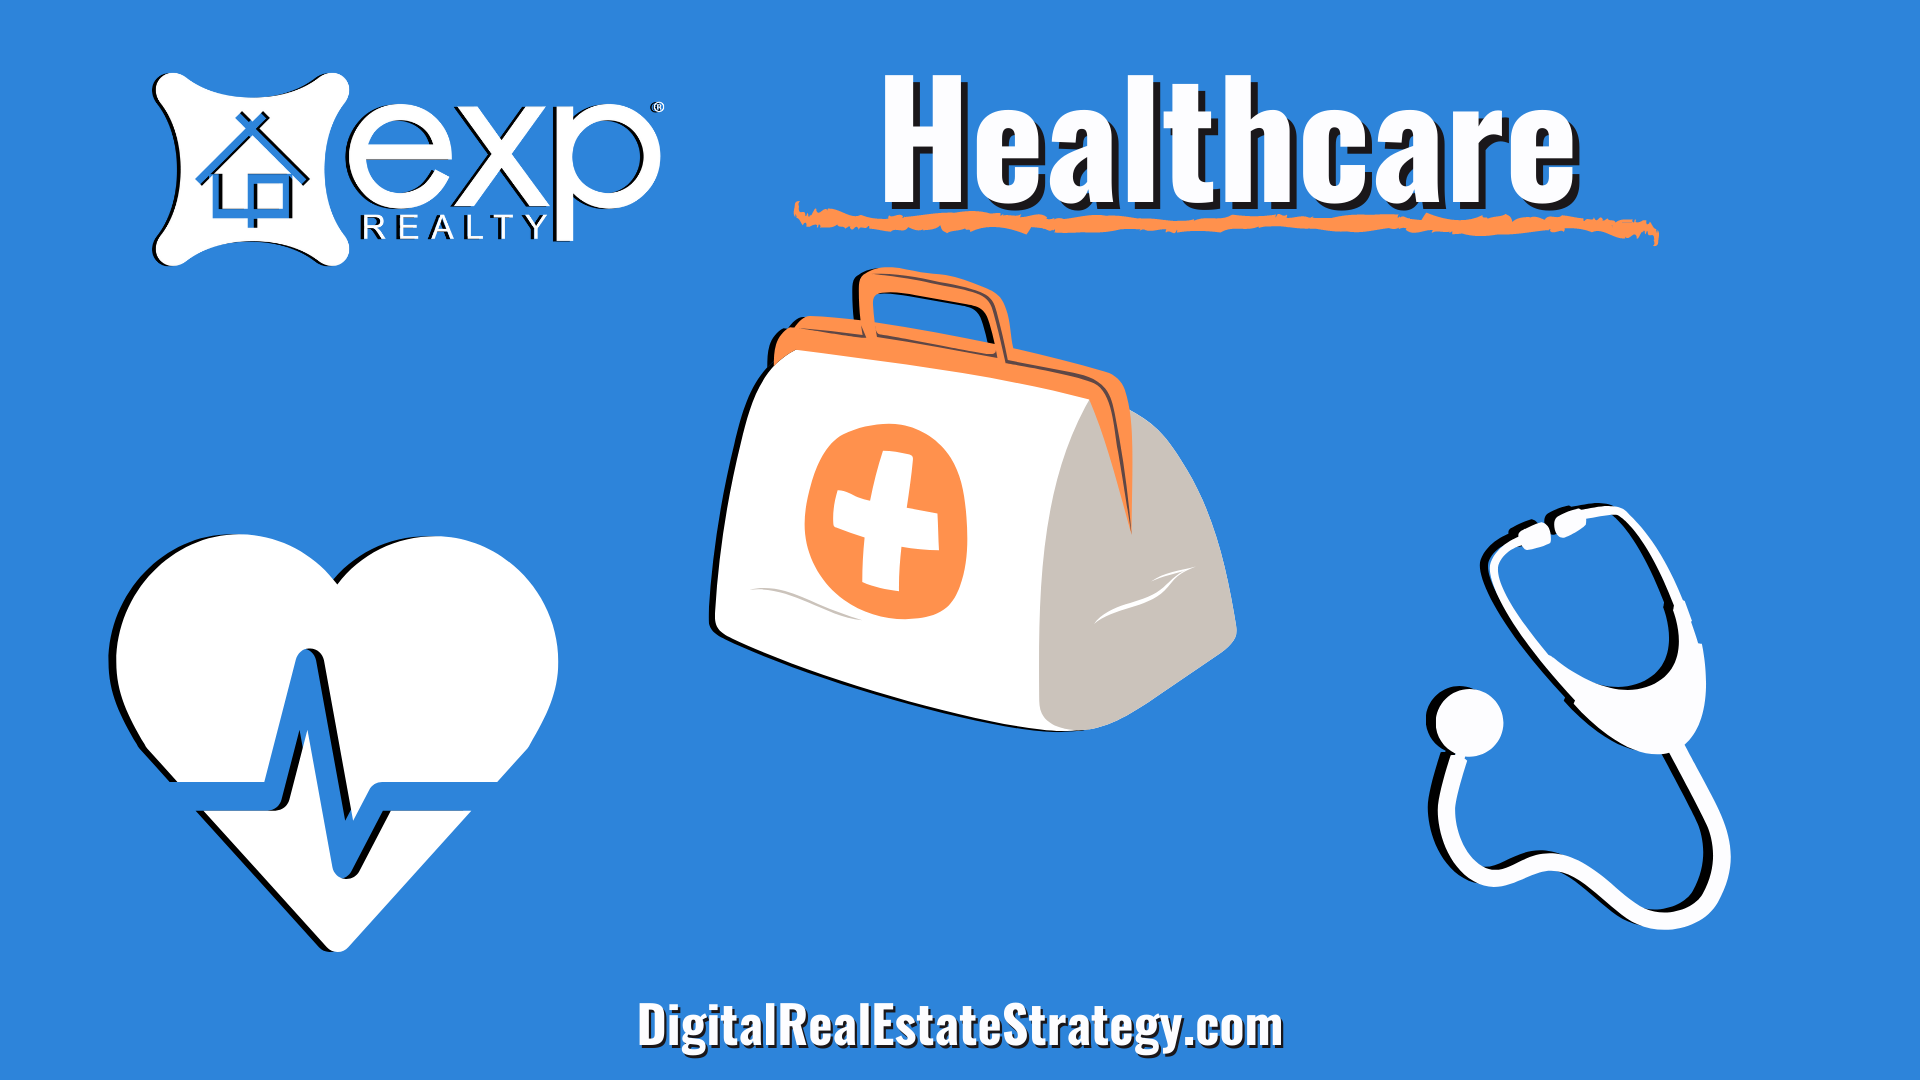 eXp Realty Review - eXp Healthcare - Clearwater - Jerome Lewis - eXp Realty Philadelphia - Digital Real Estate Strategy